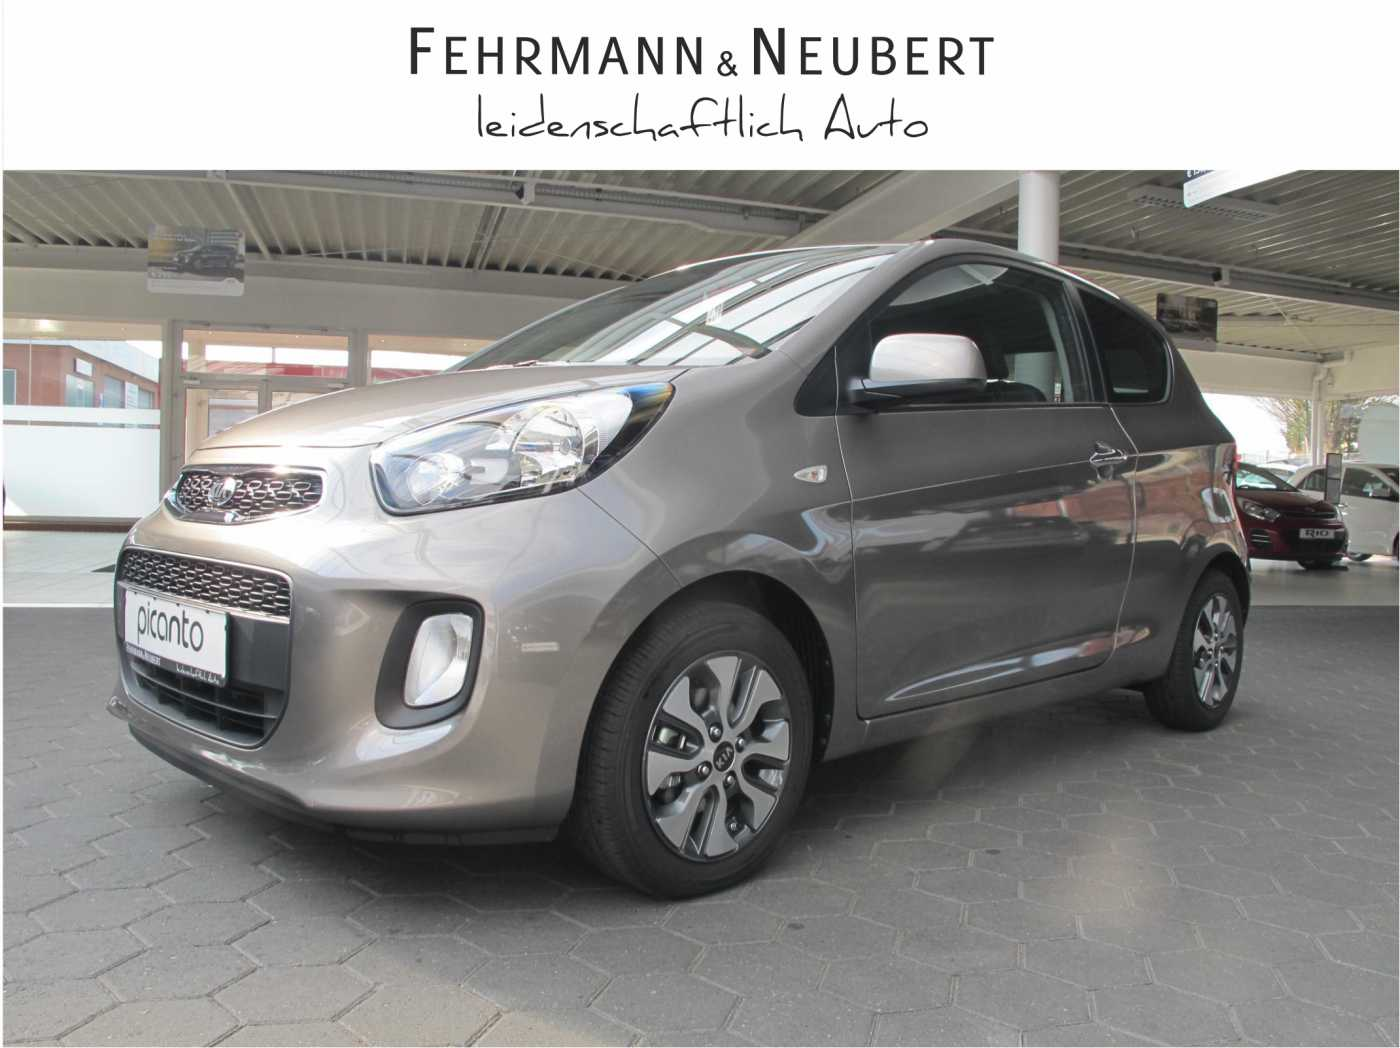 Kia Picanto 1.0 Dream Team Edition, Jahr 2016, Benzin